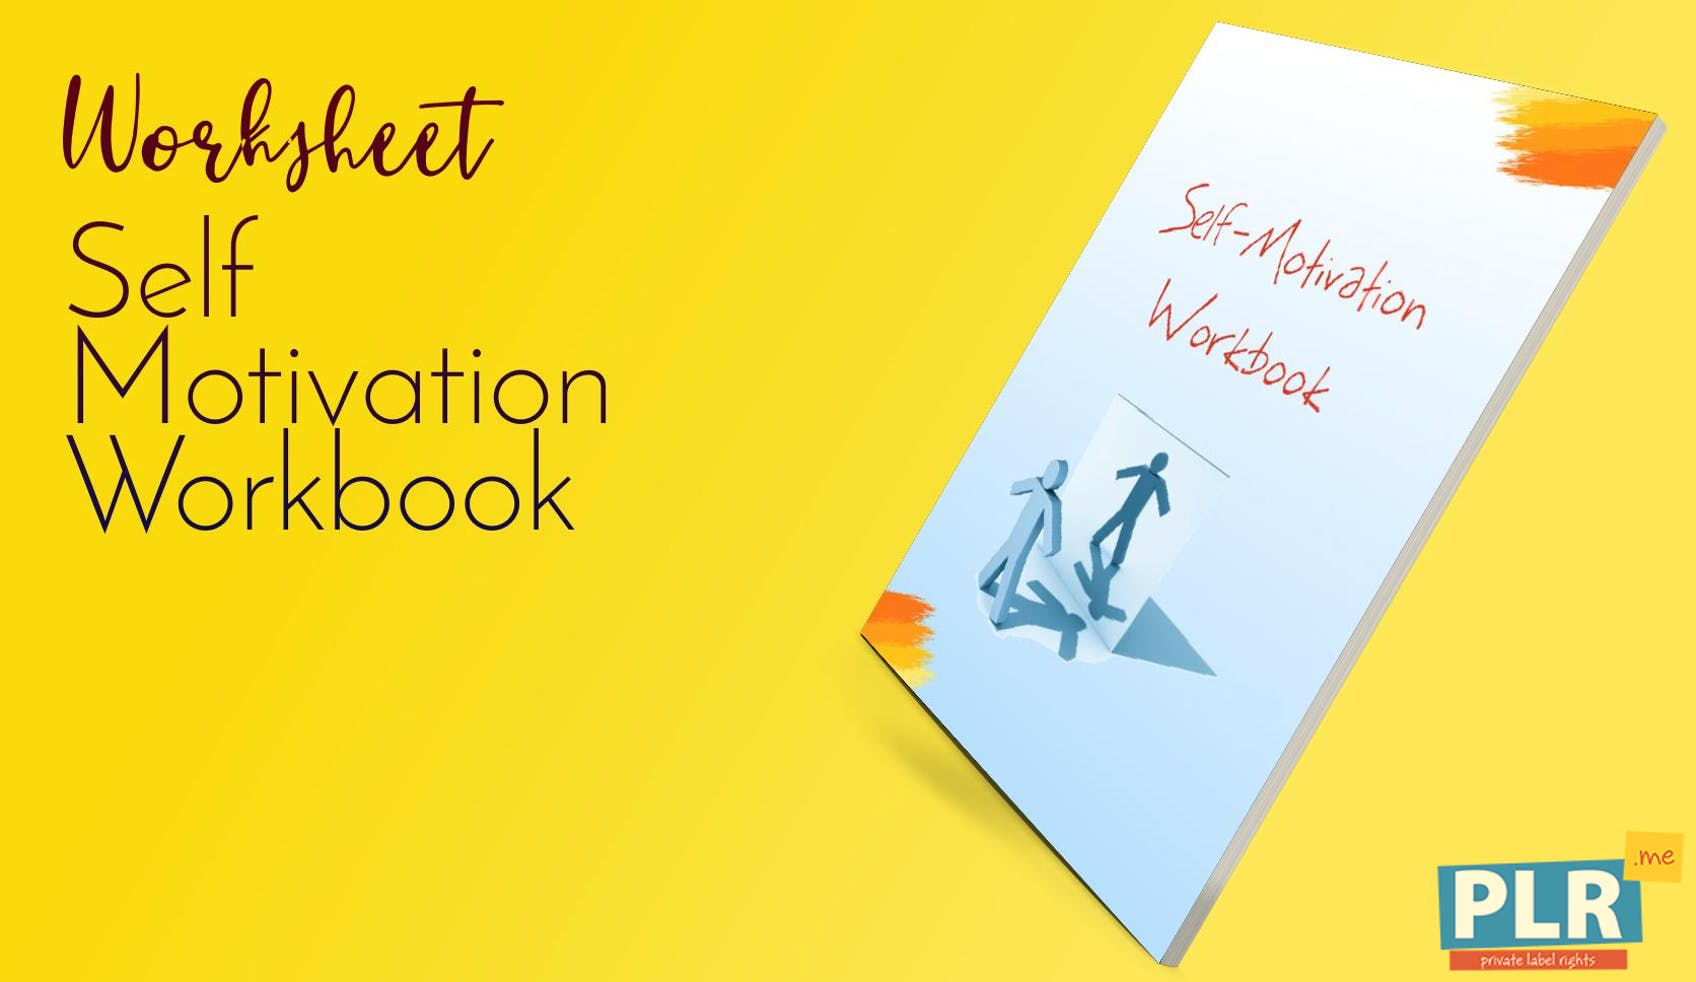 Self Motivation Workbook